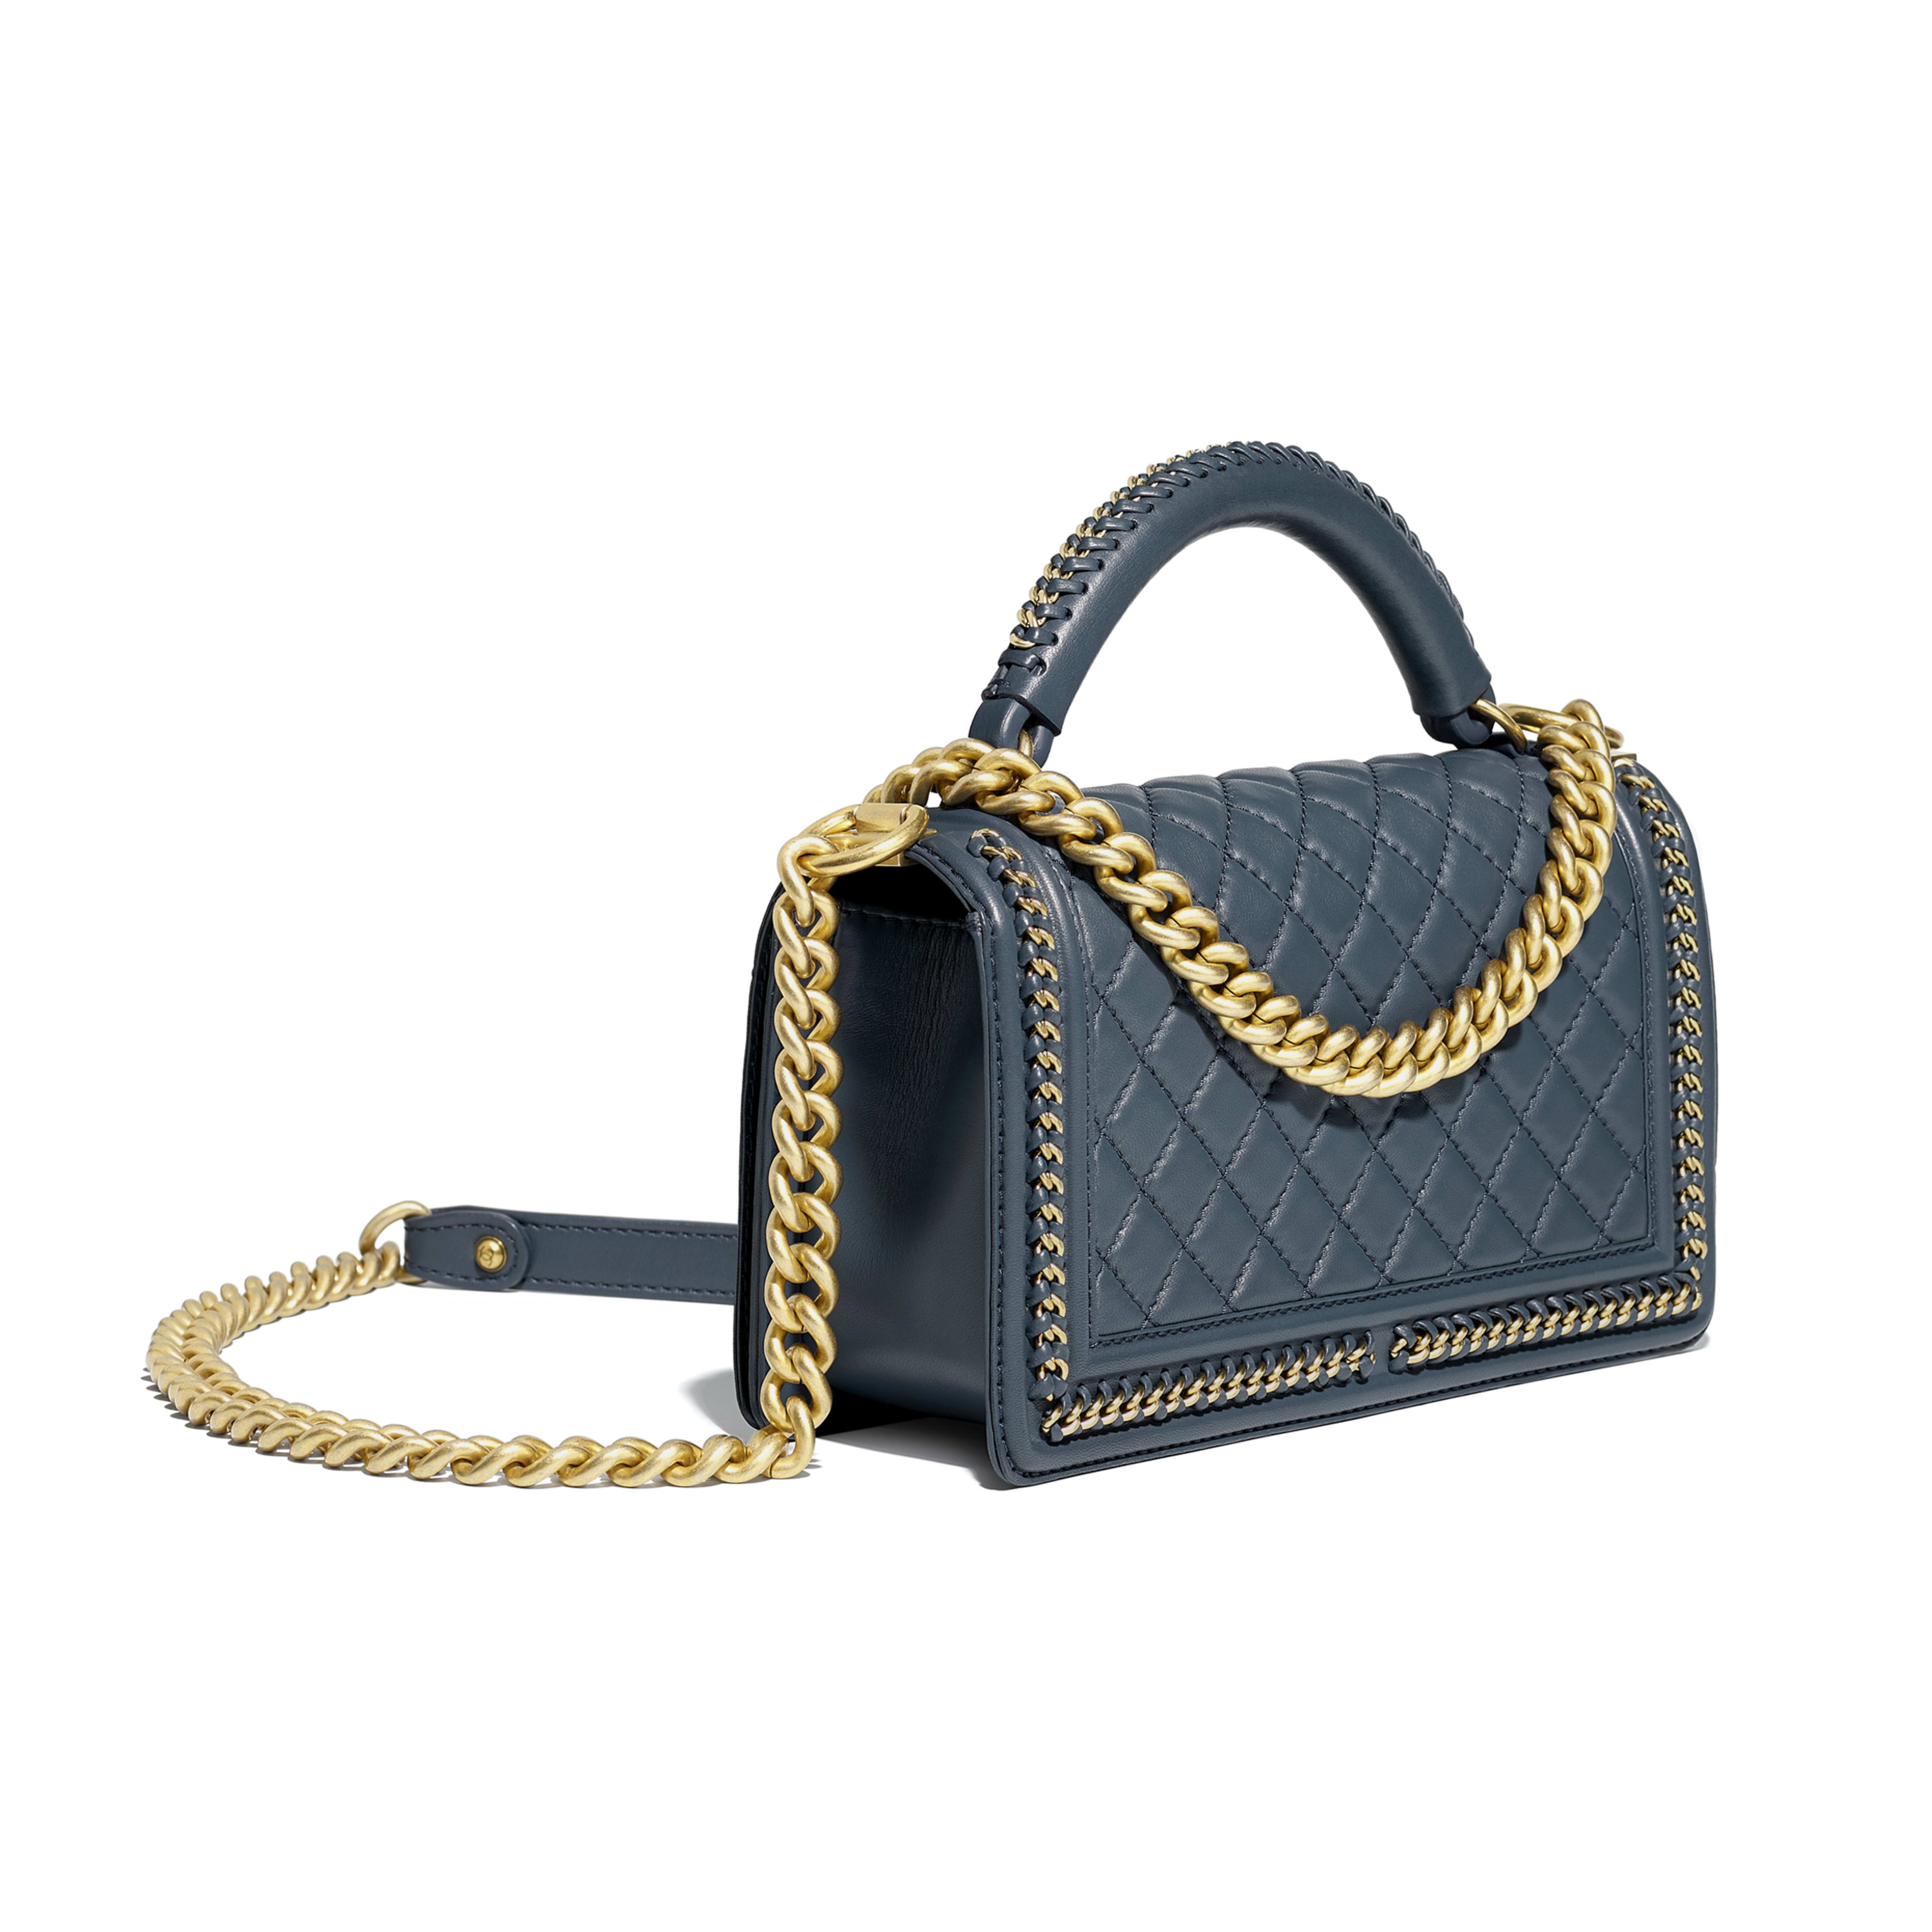 BOY CHANEL Flap Bag with Handle - Blue - Calfskin & Gold-Tone Metal - Other view - see full sized version